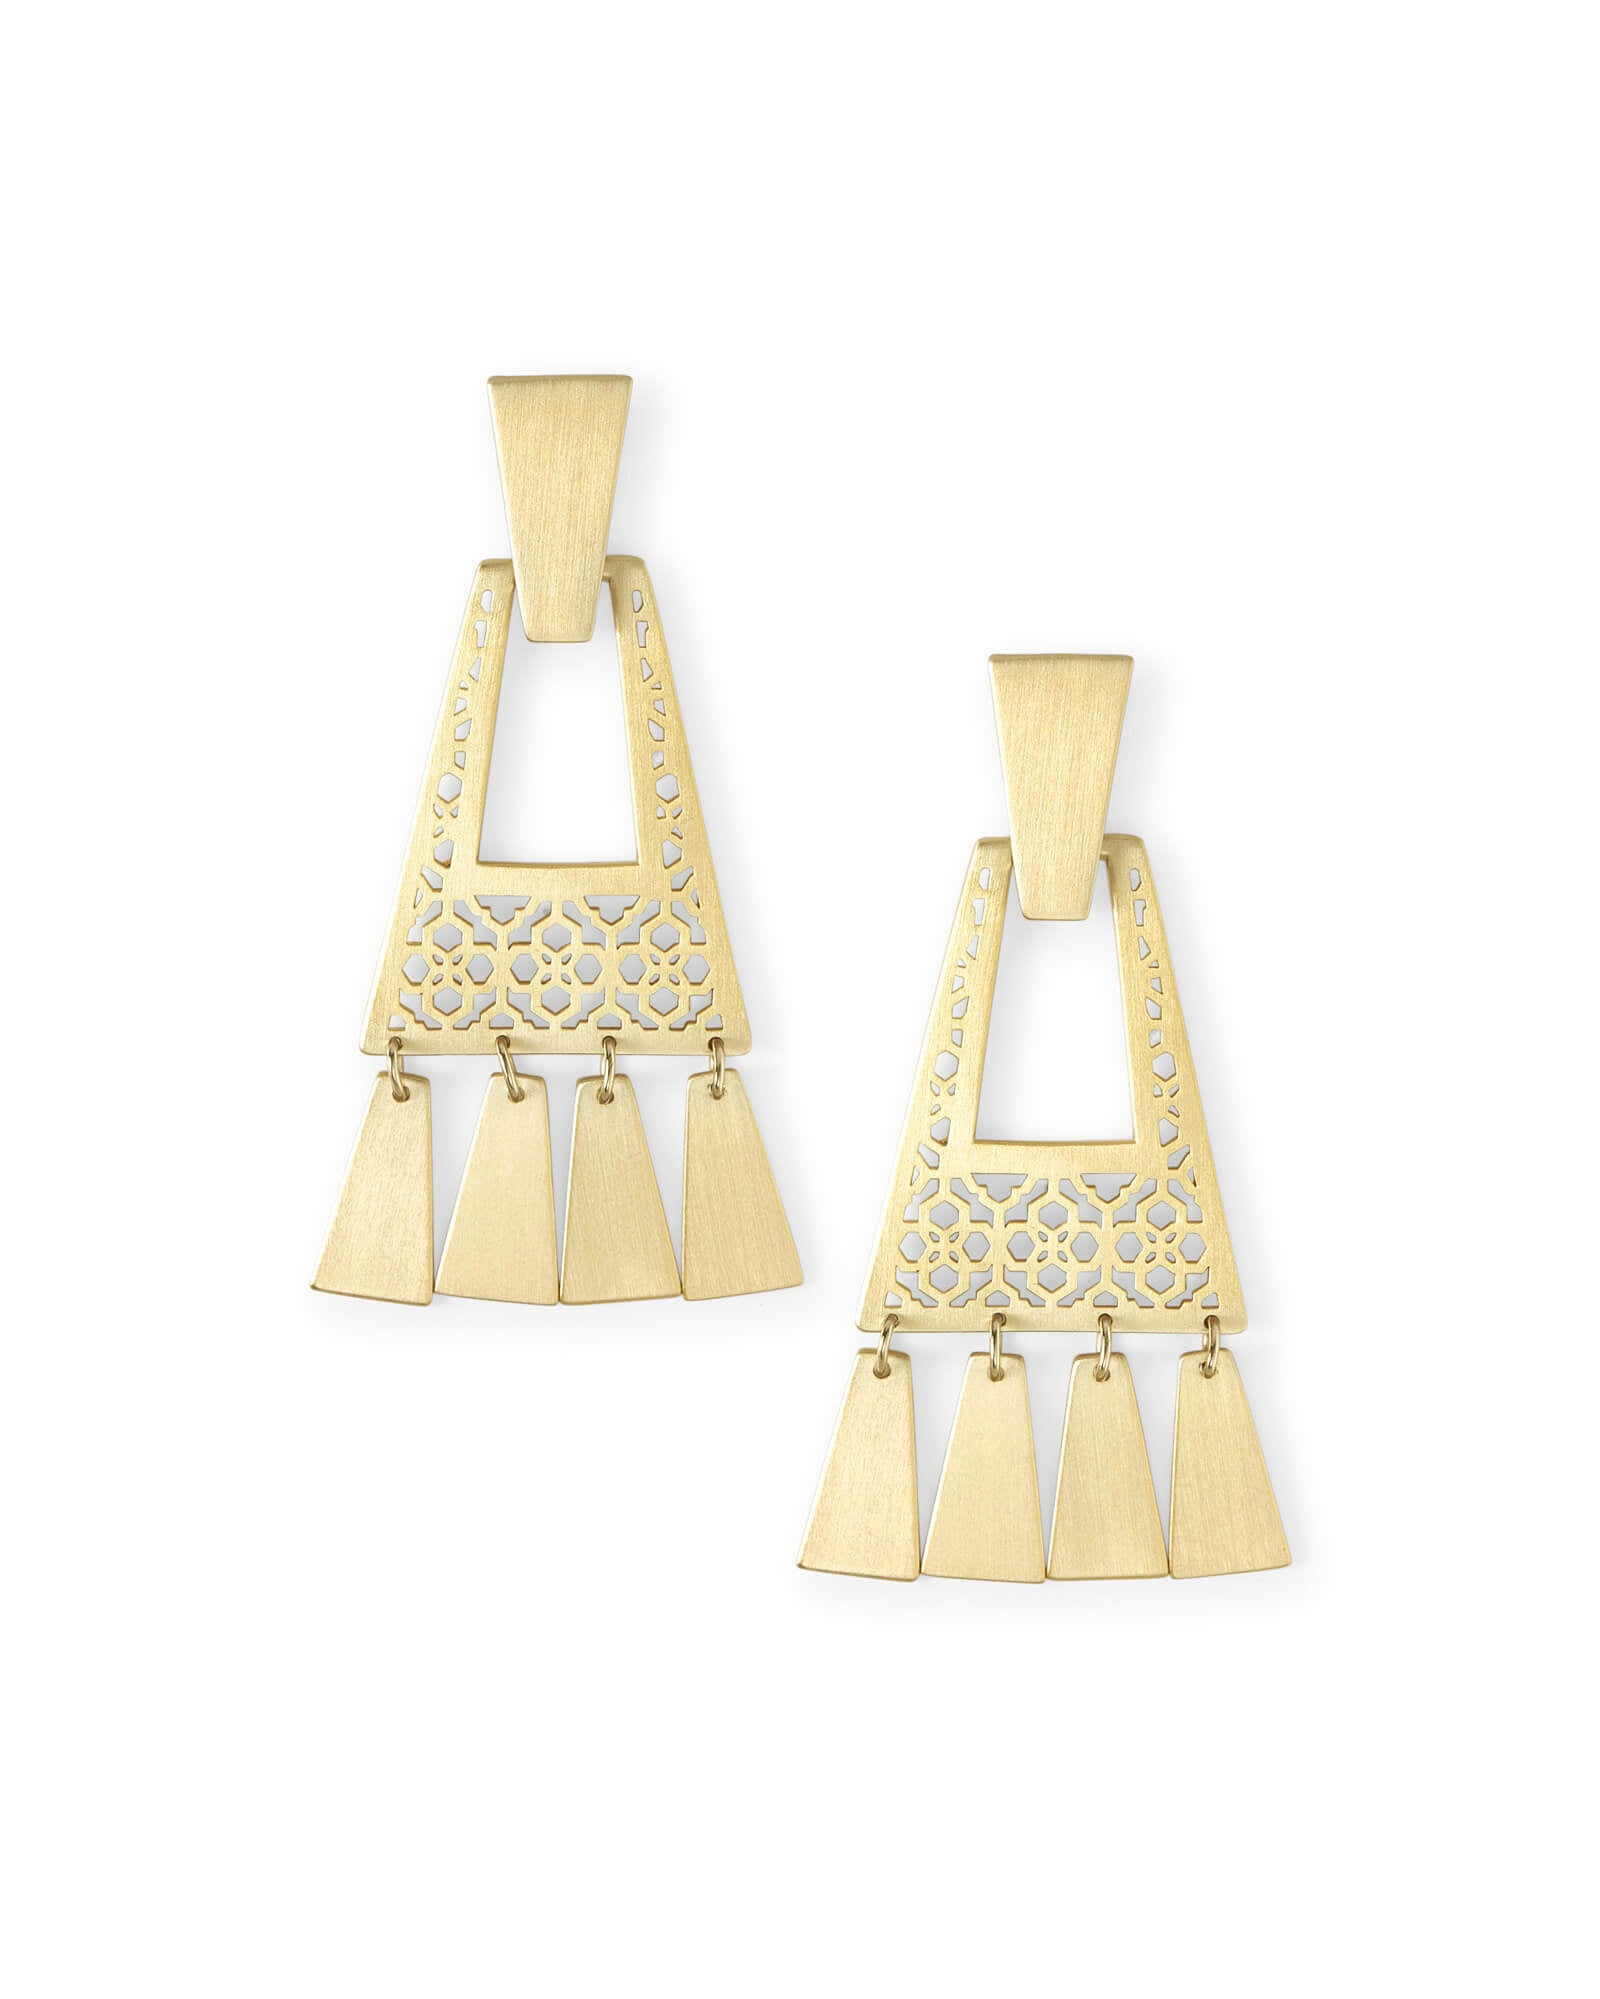 Kase Gold Fringe Earrings in Gold Filigree